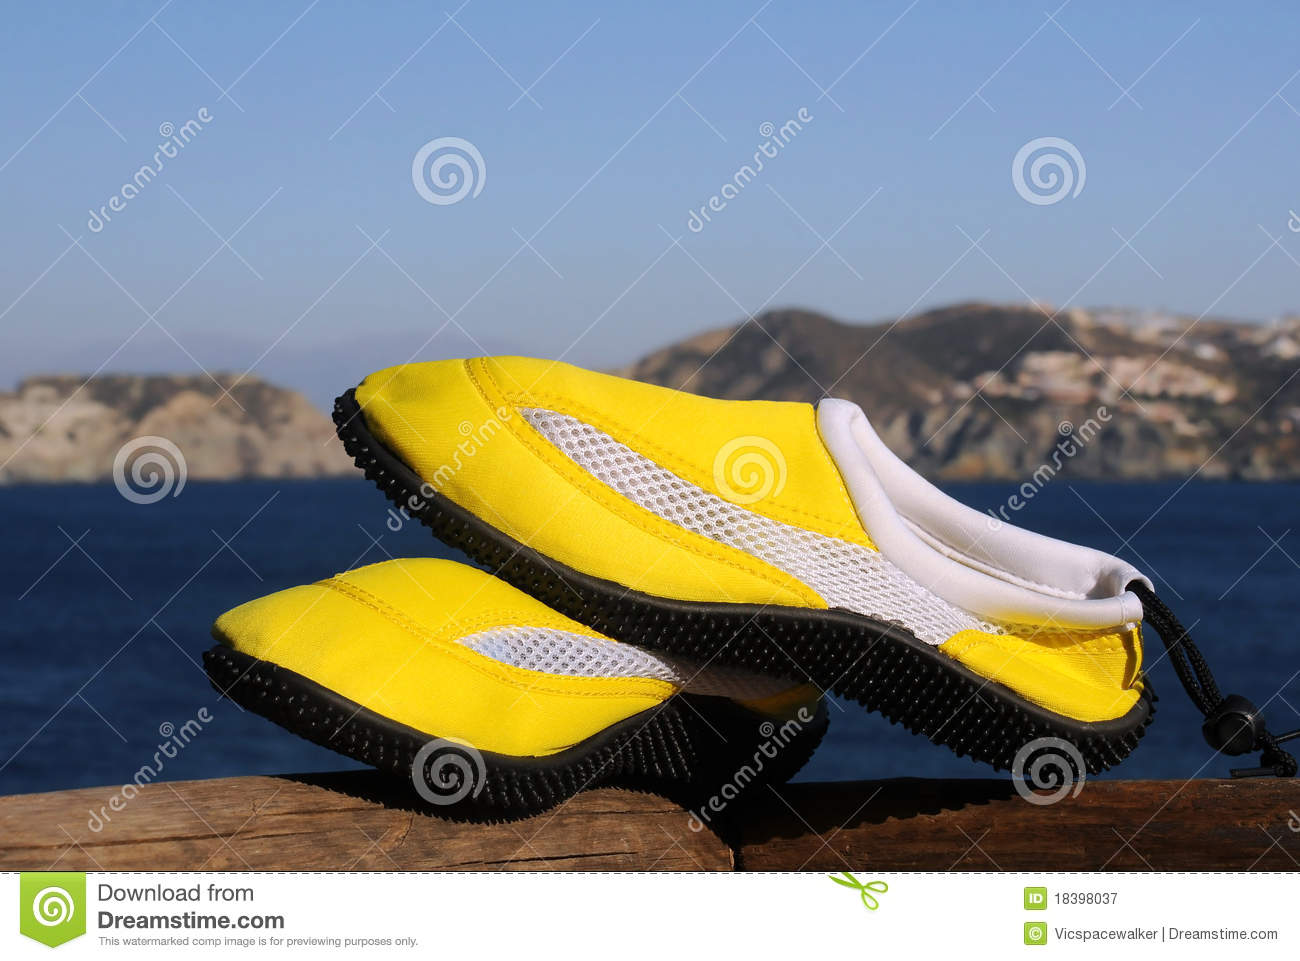 What Are The Best Water Shoes For Ocean Swimming